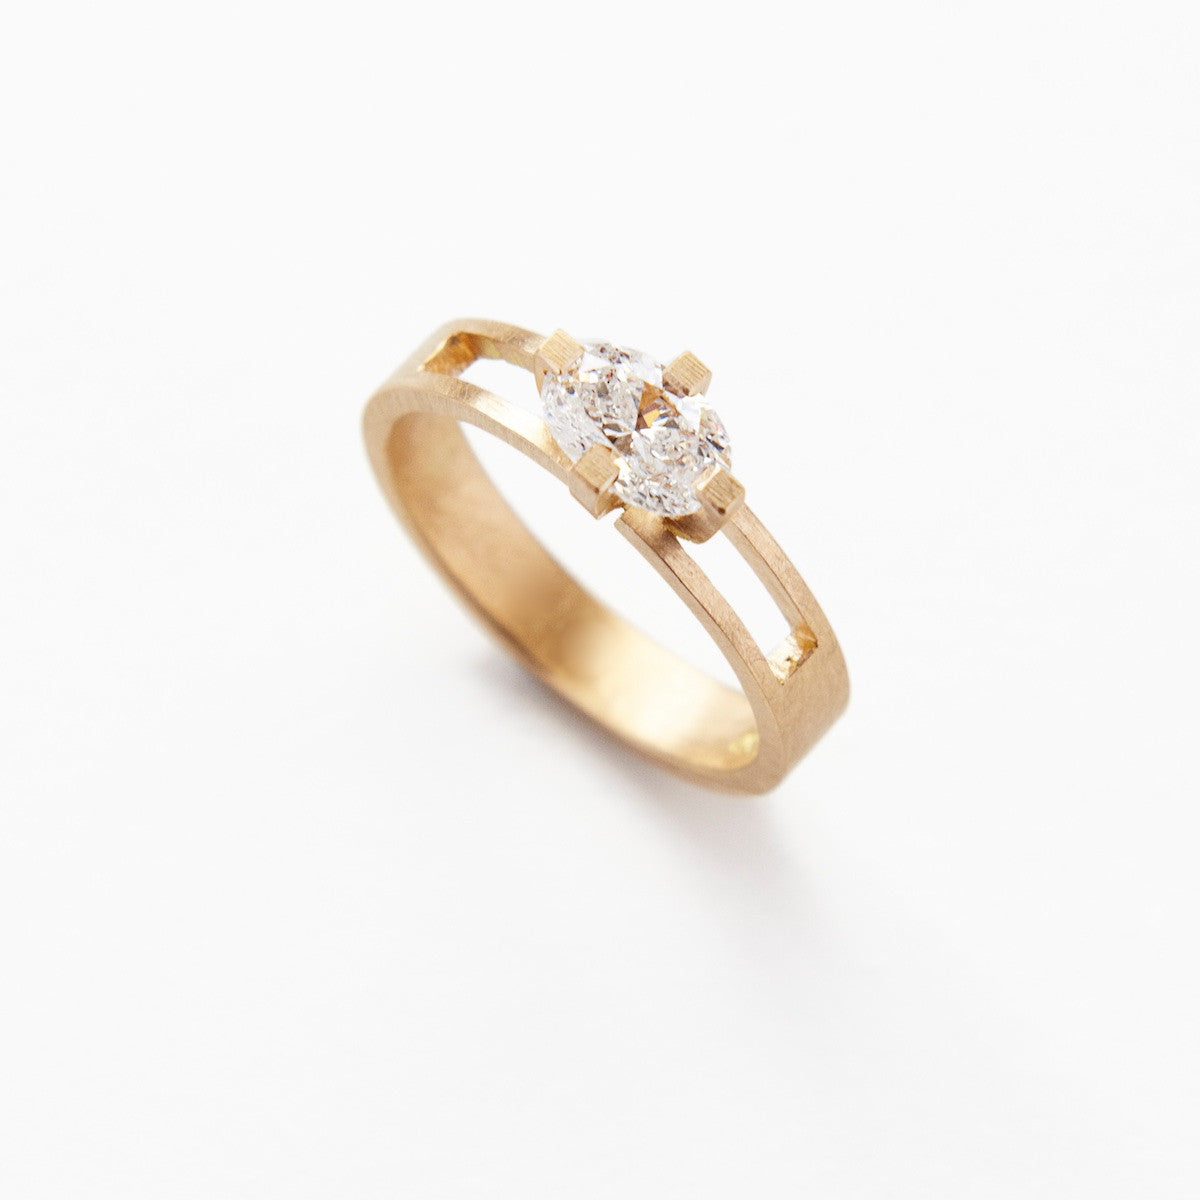 'Kirigami No. 2' Fairtrade Gold Ring with Oval Cut Diamond